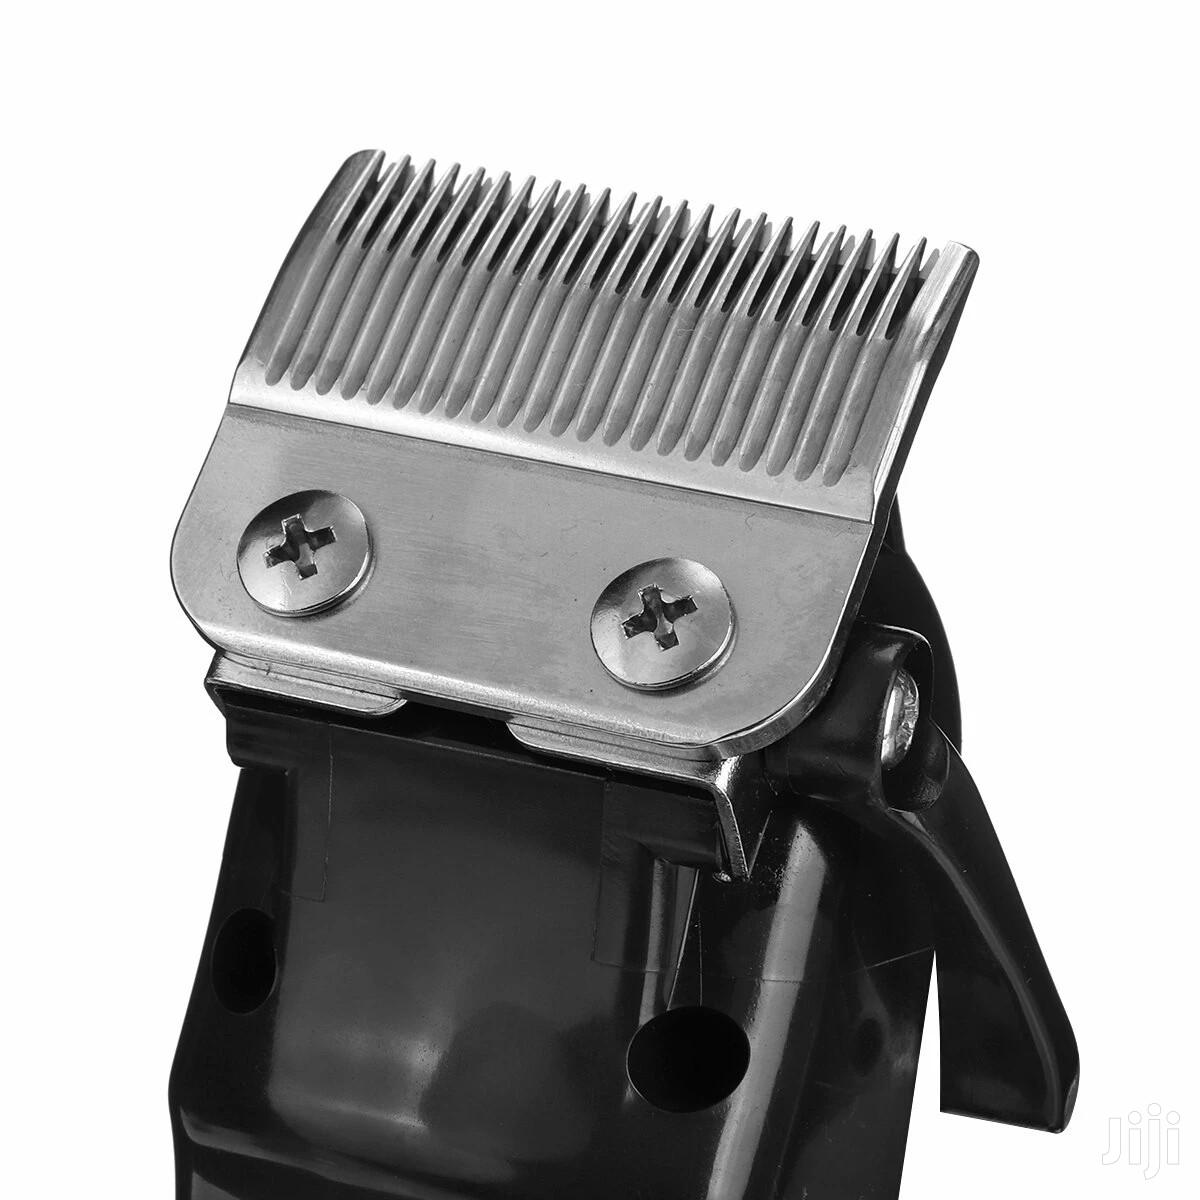 Rechargeable Hair Clipper/Shaving Machine | Tools & Accessories for sale in Kampala, Central Region, Uganda